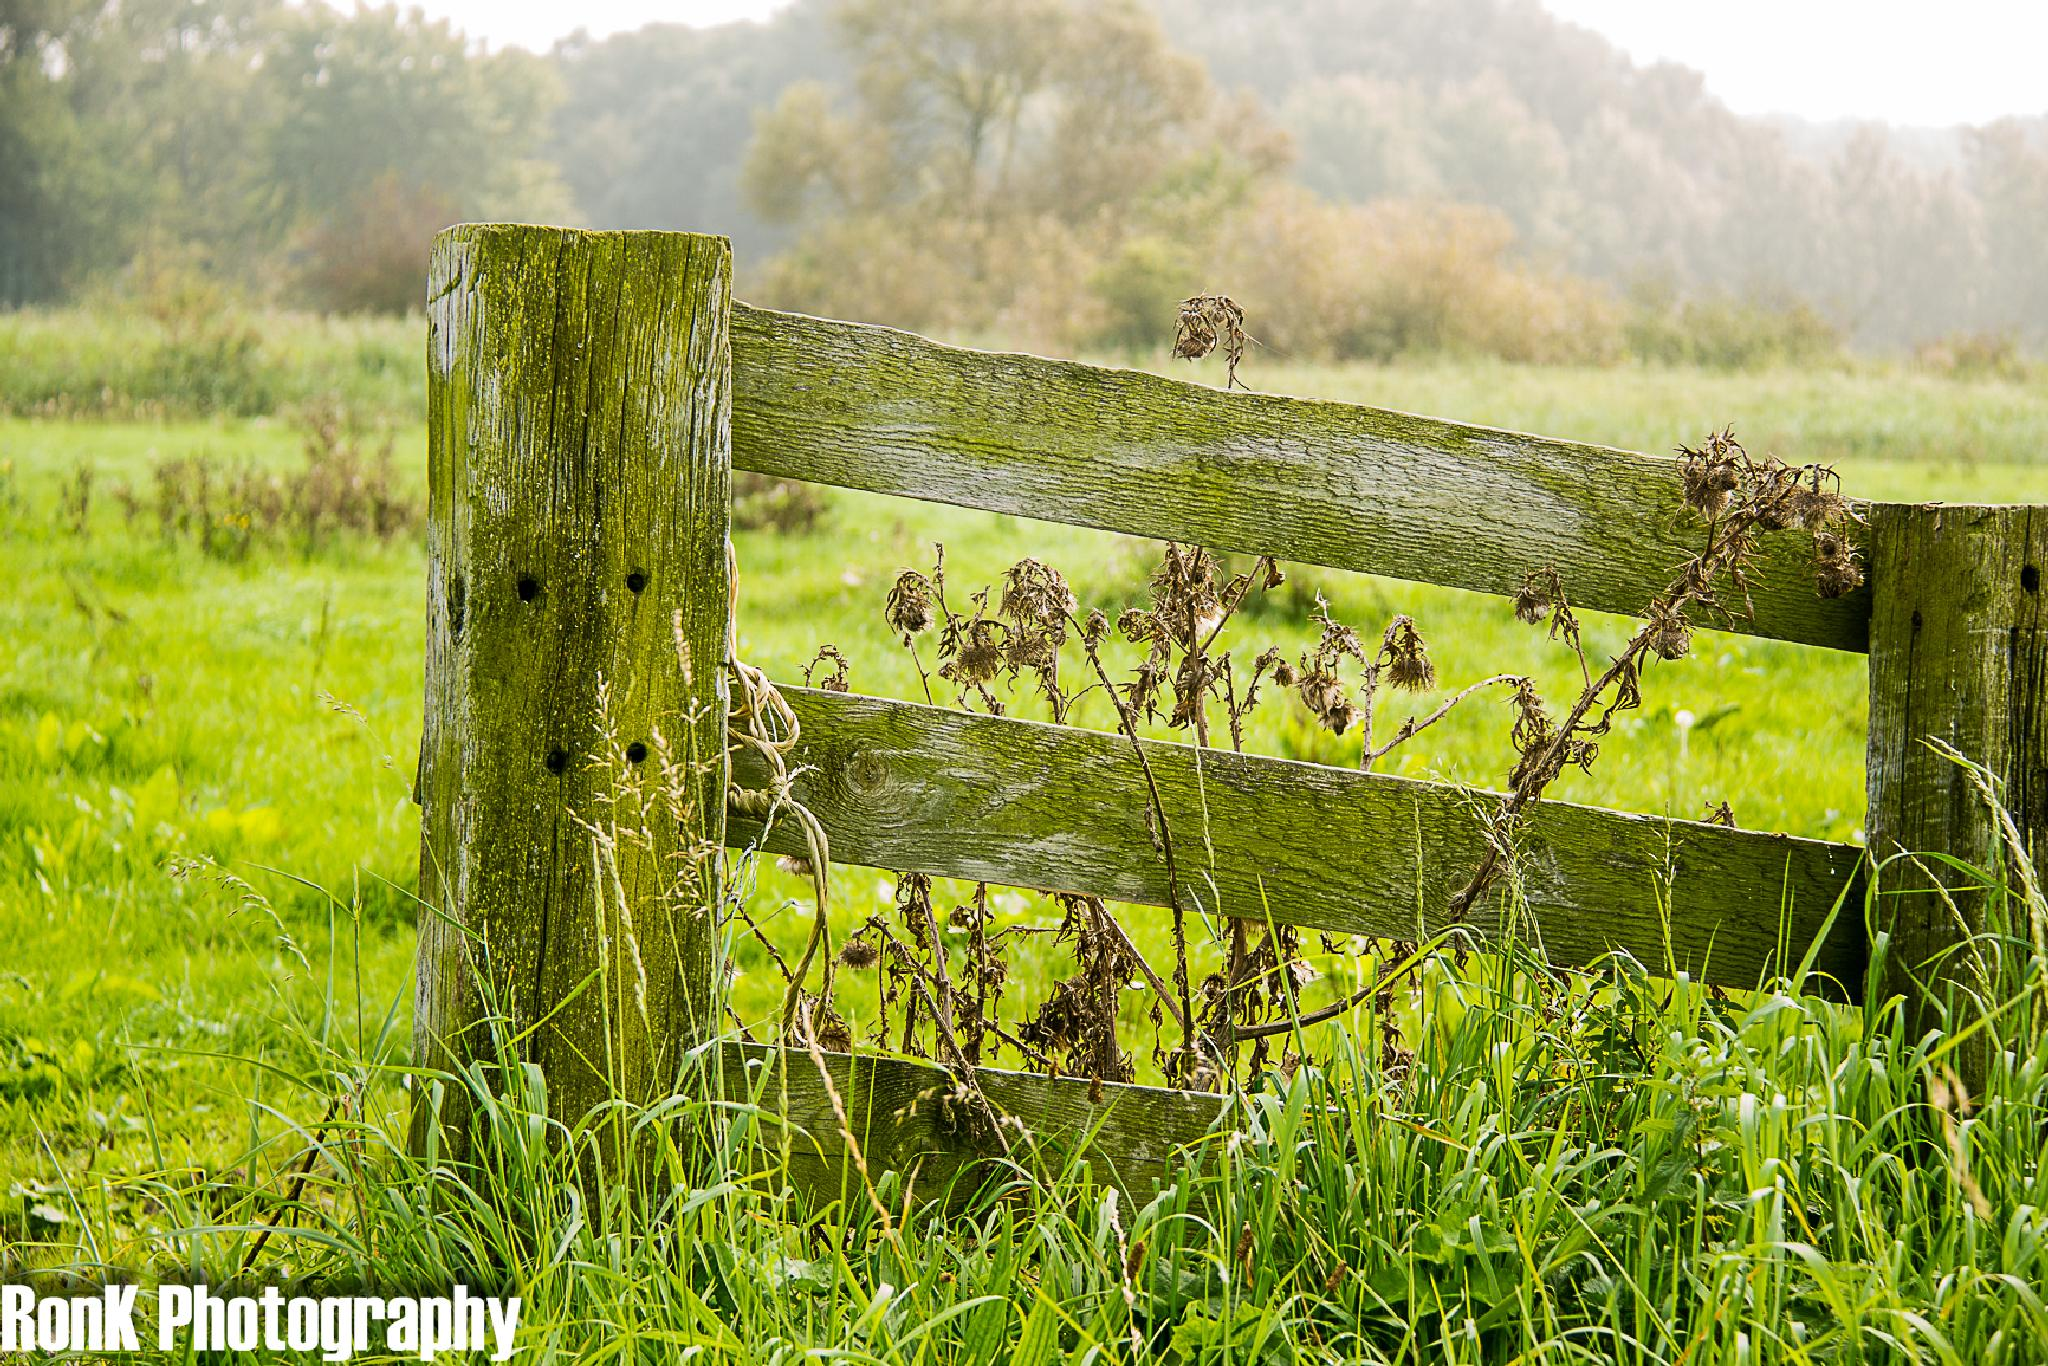 Fence by ron.koster23